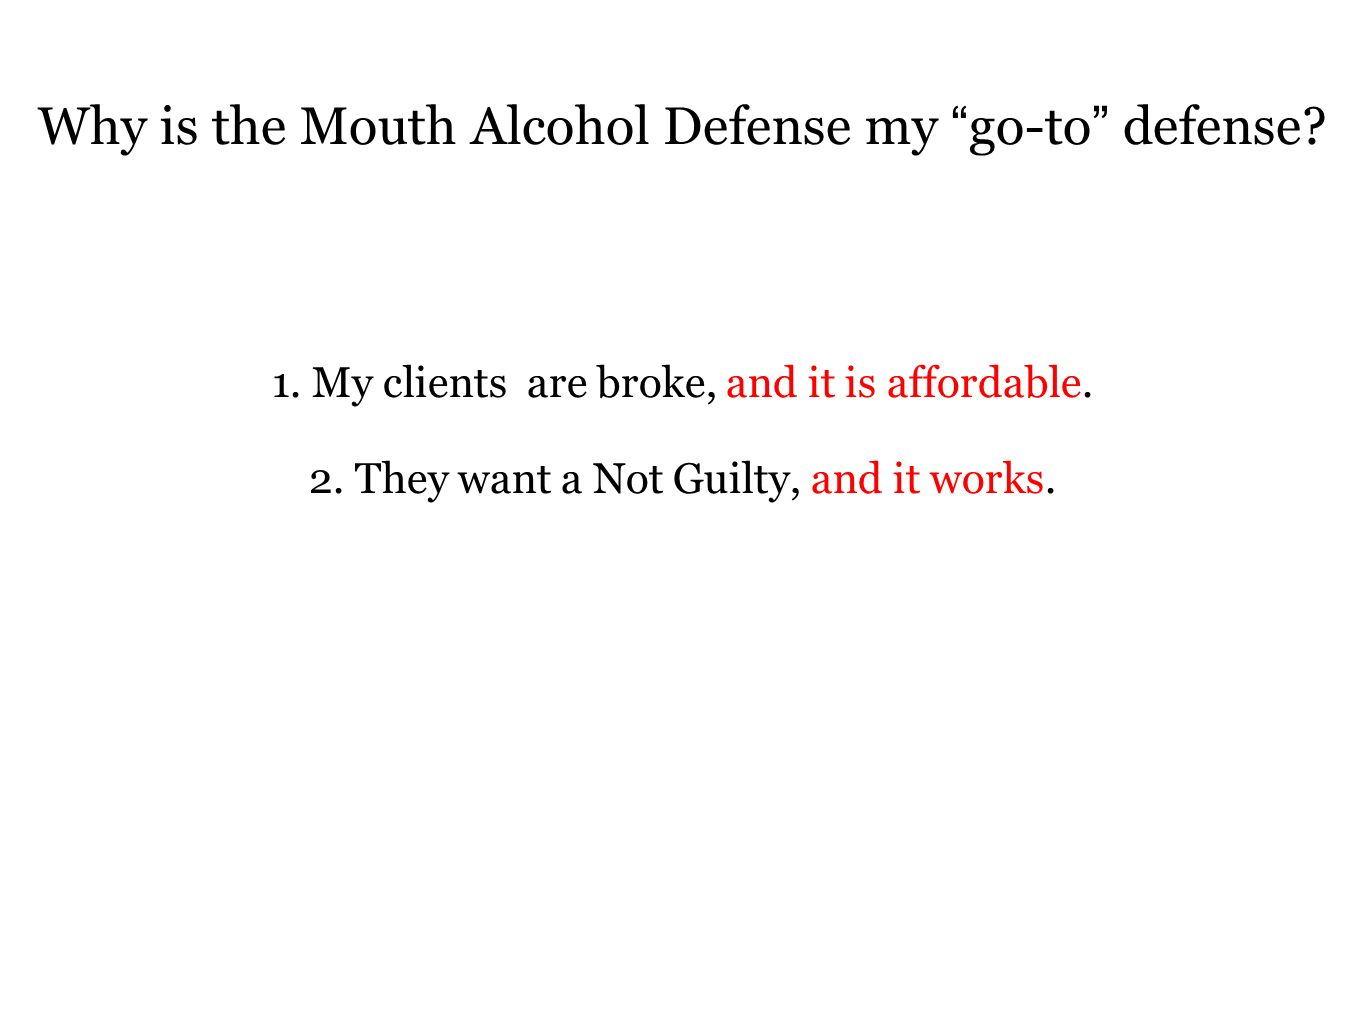 Why is the Mouth Alcohol Defense my go-to defense